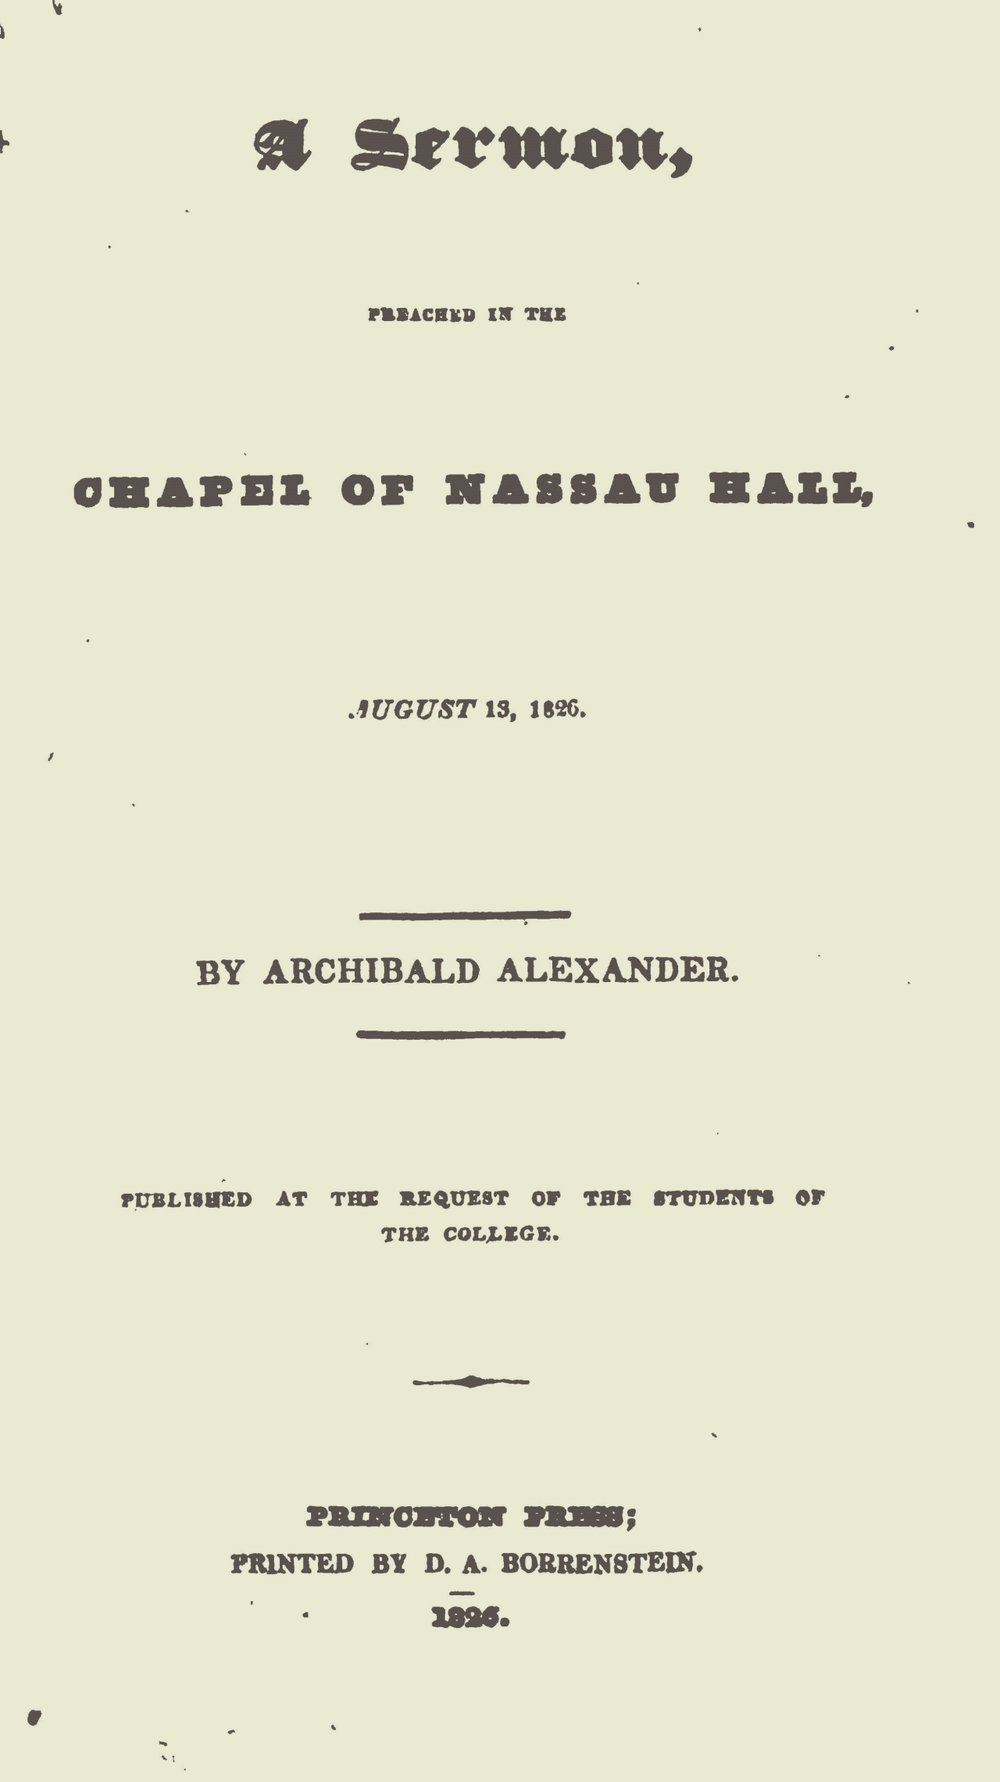 Alexander, Archibald, A Sermon Preached in the Chapel of Nassau Hall Title Page.jpg